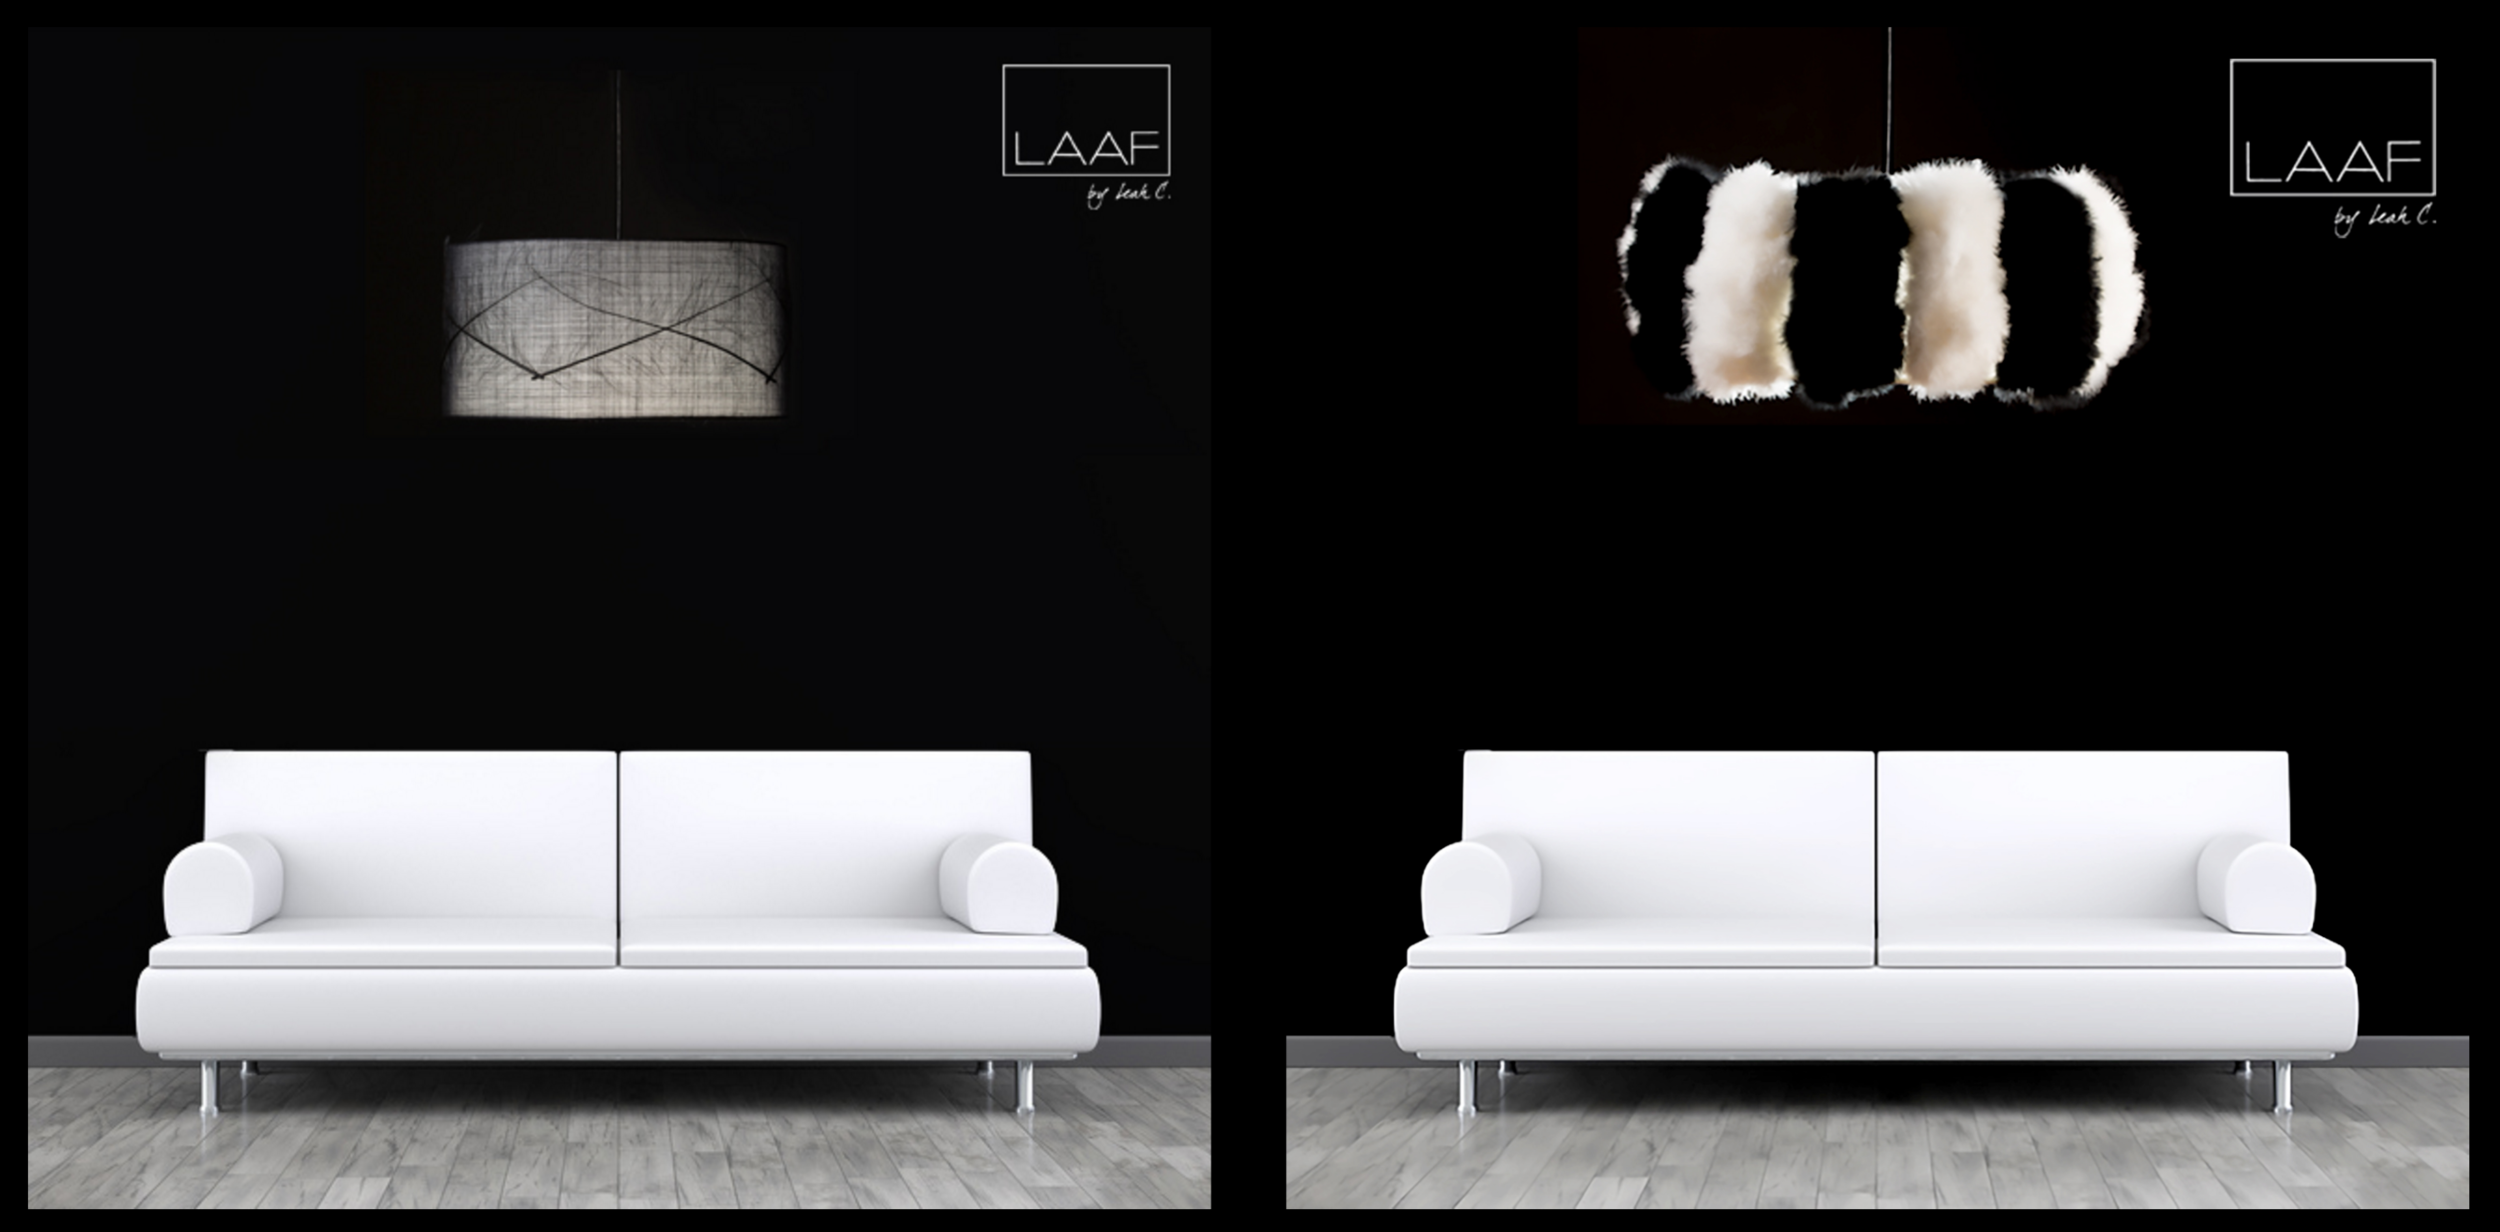 LAAF LS05 & LAAF LS14 : Purchase via our Lampshade shop tab!